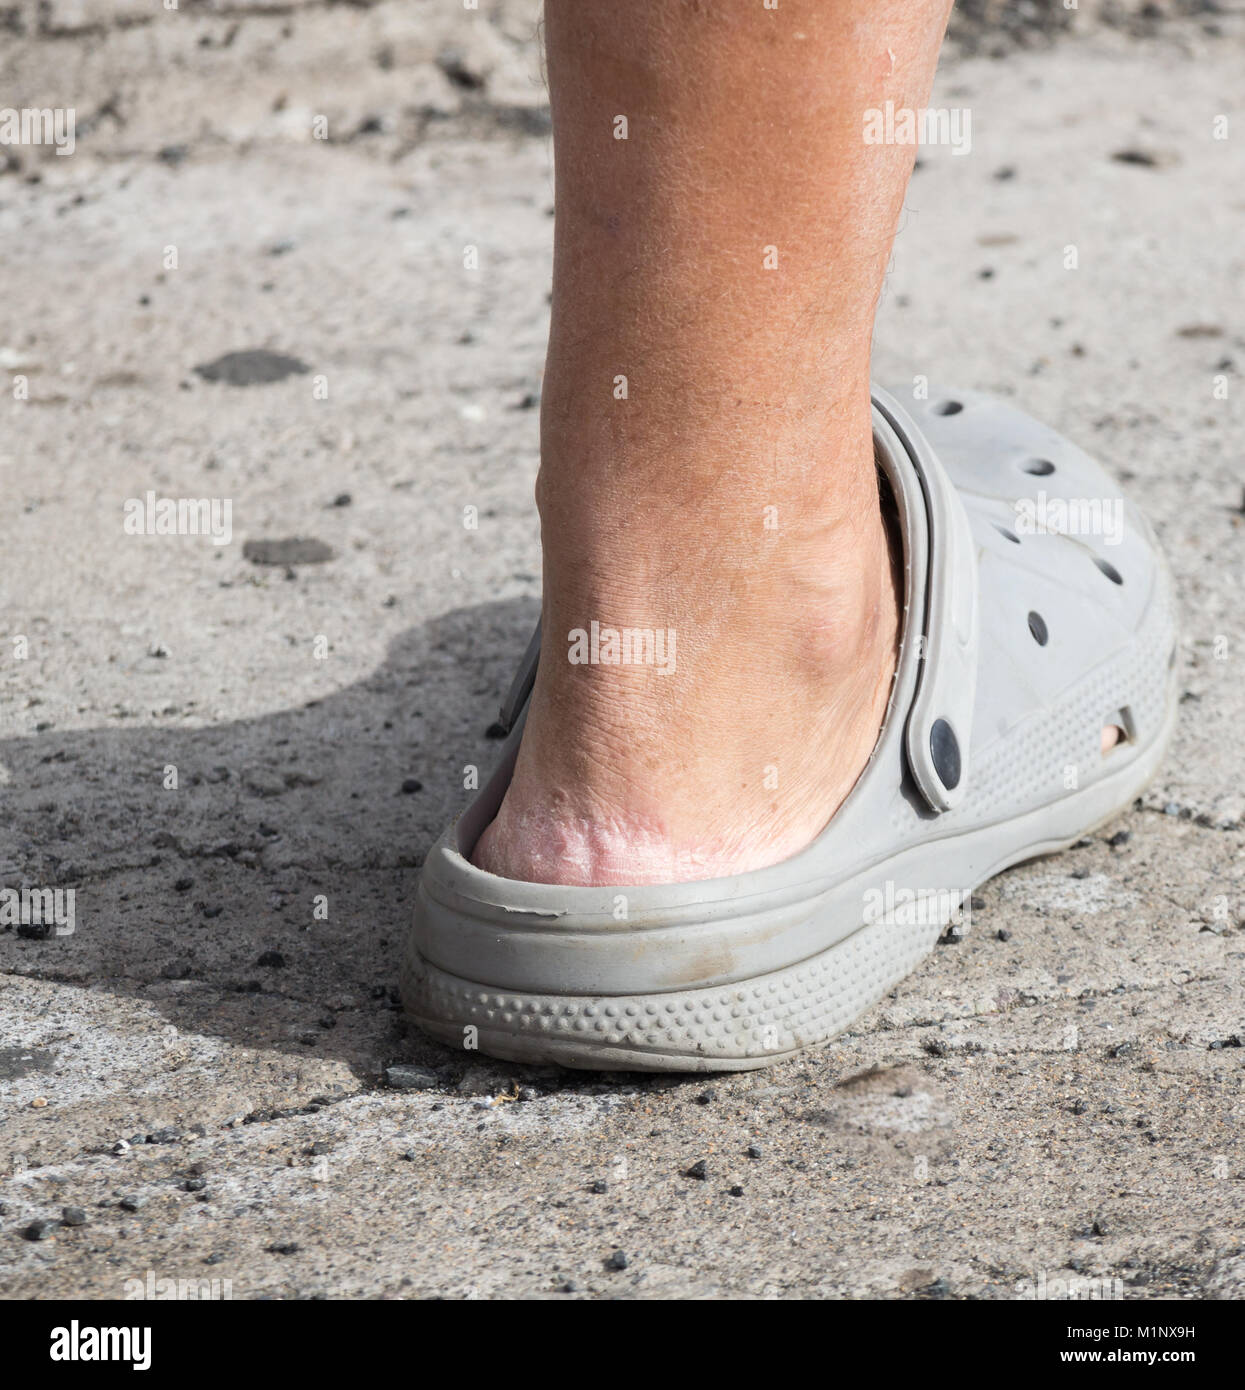 Crocs sandals. Person wearing Crocs without socks. Cracked skin on heel - Stock Image